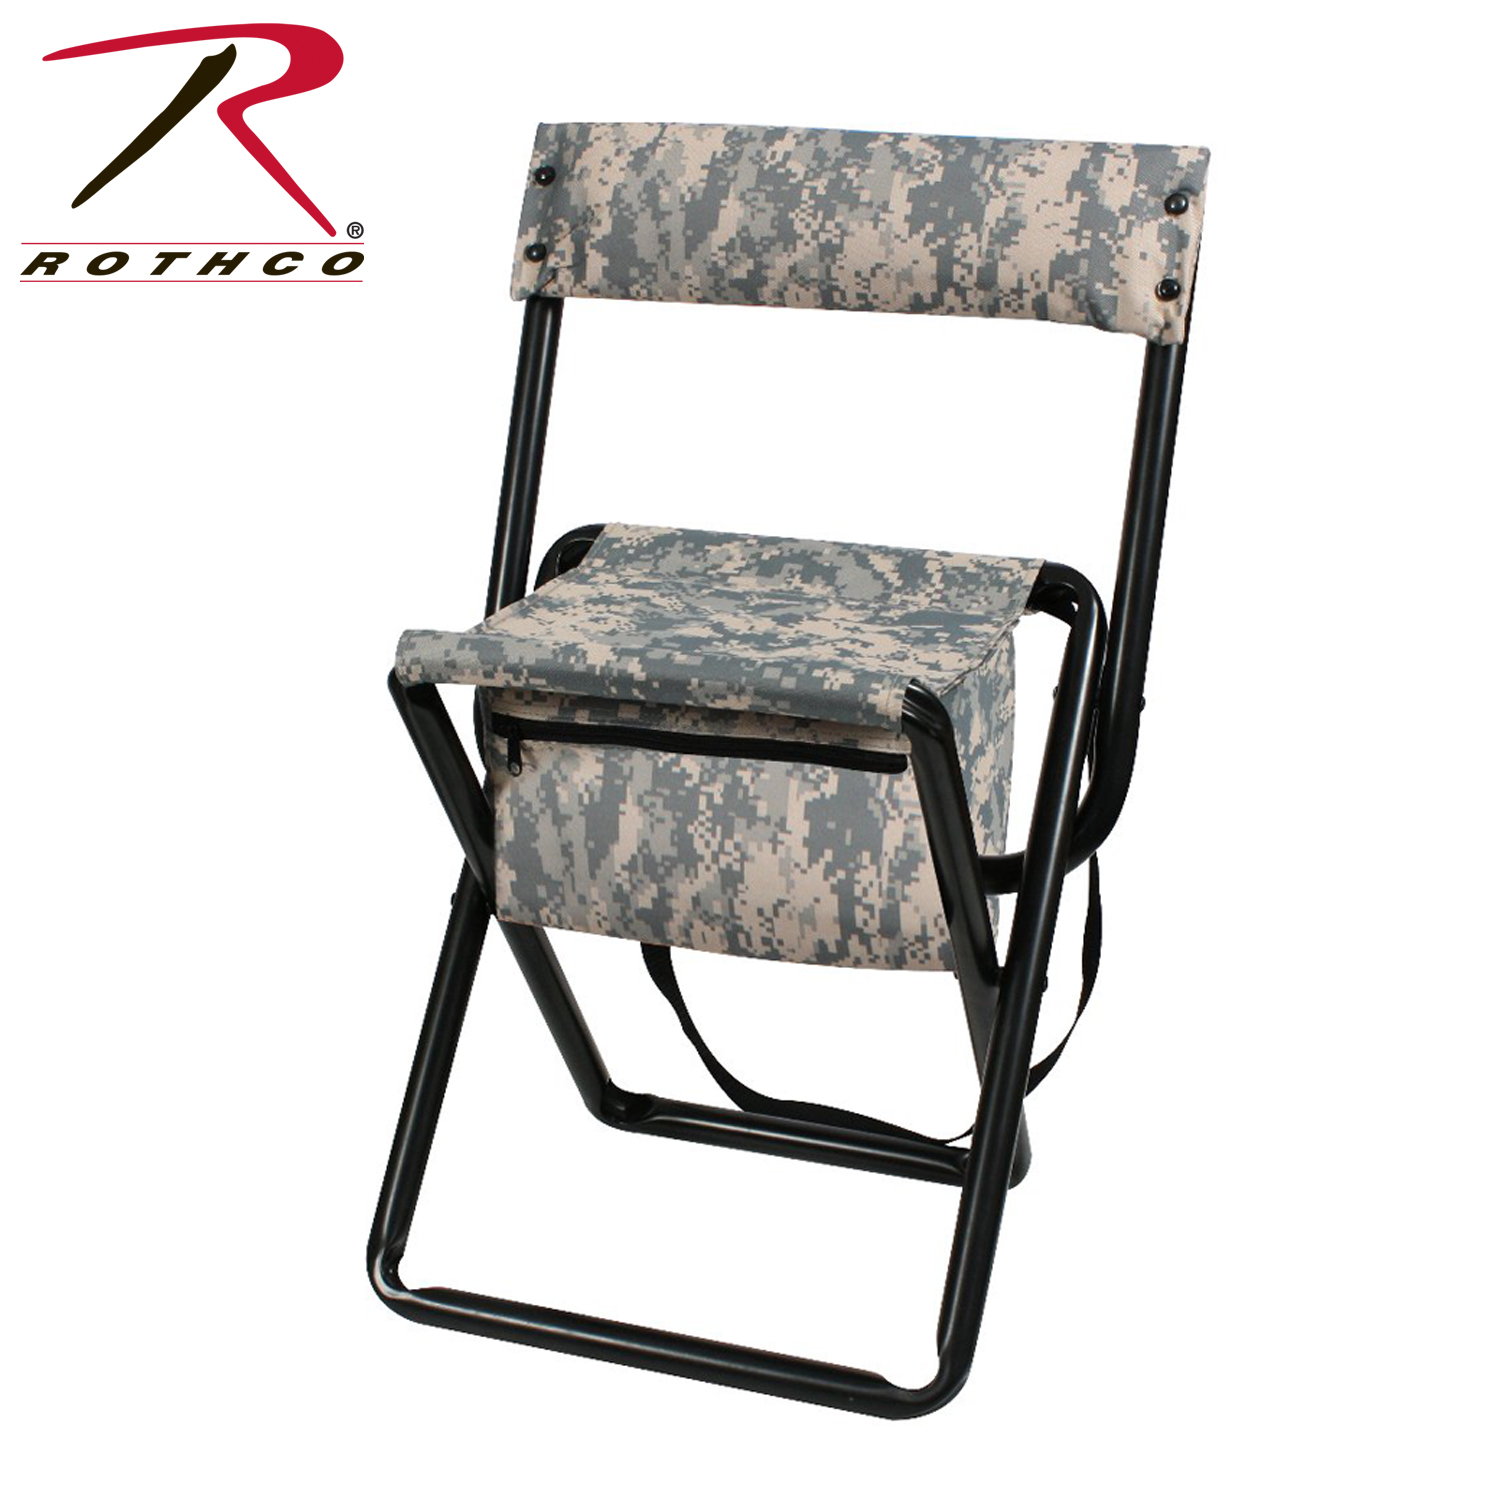 Rothco Deluxe Camo Stool With Pouch Back